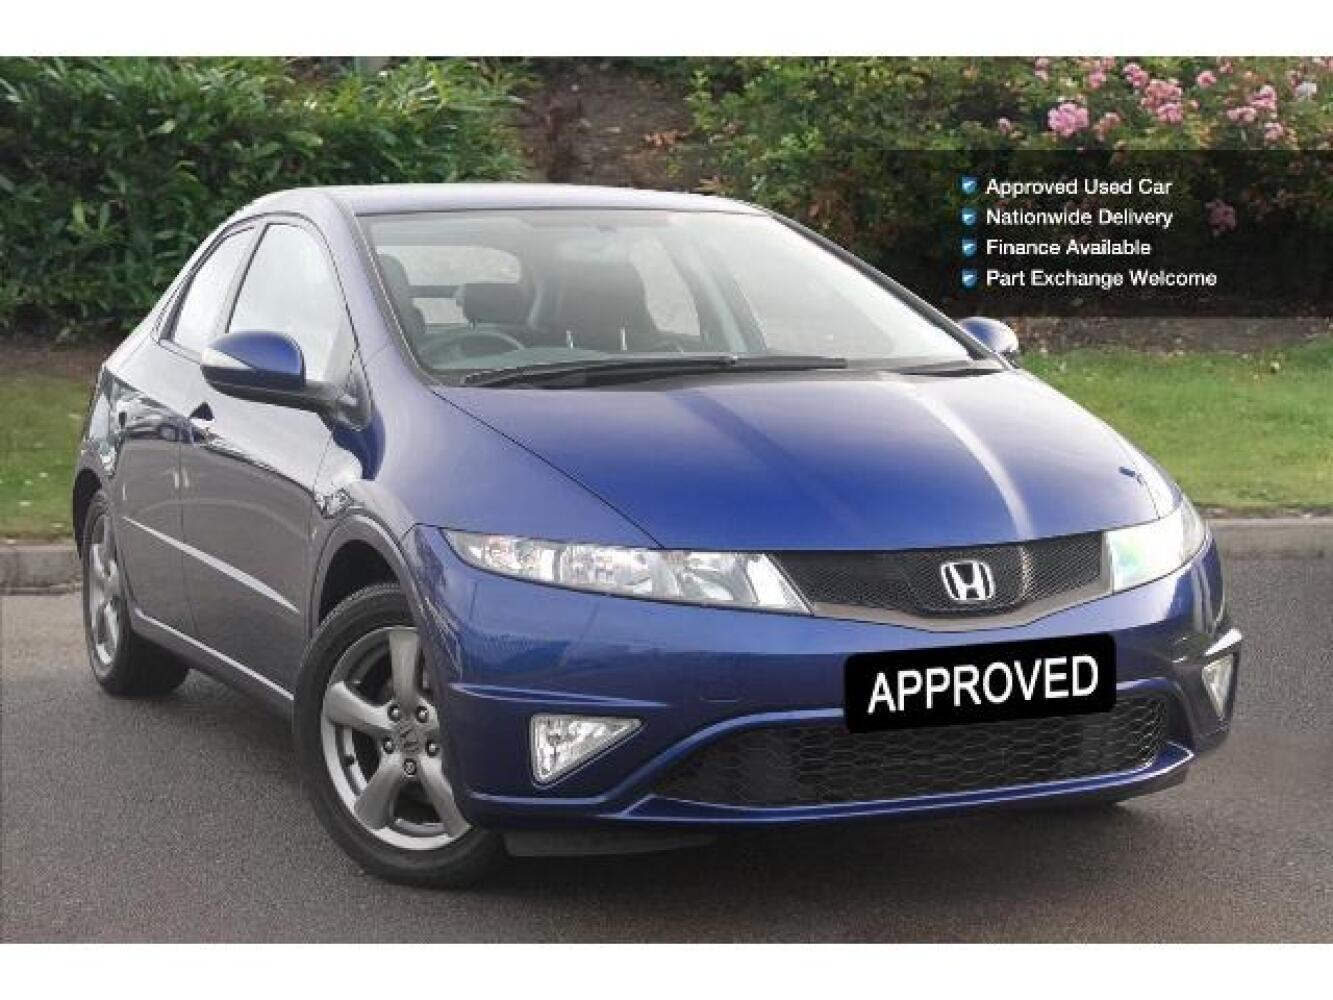 used honda civic 1 4 i vtec si 5dr petrol hatchback for sale vertu honda. Black Bedroom Furniture Sets. Home Design Ideas